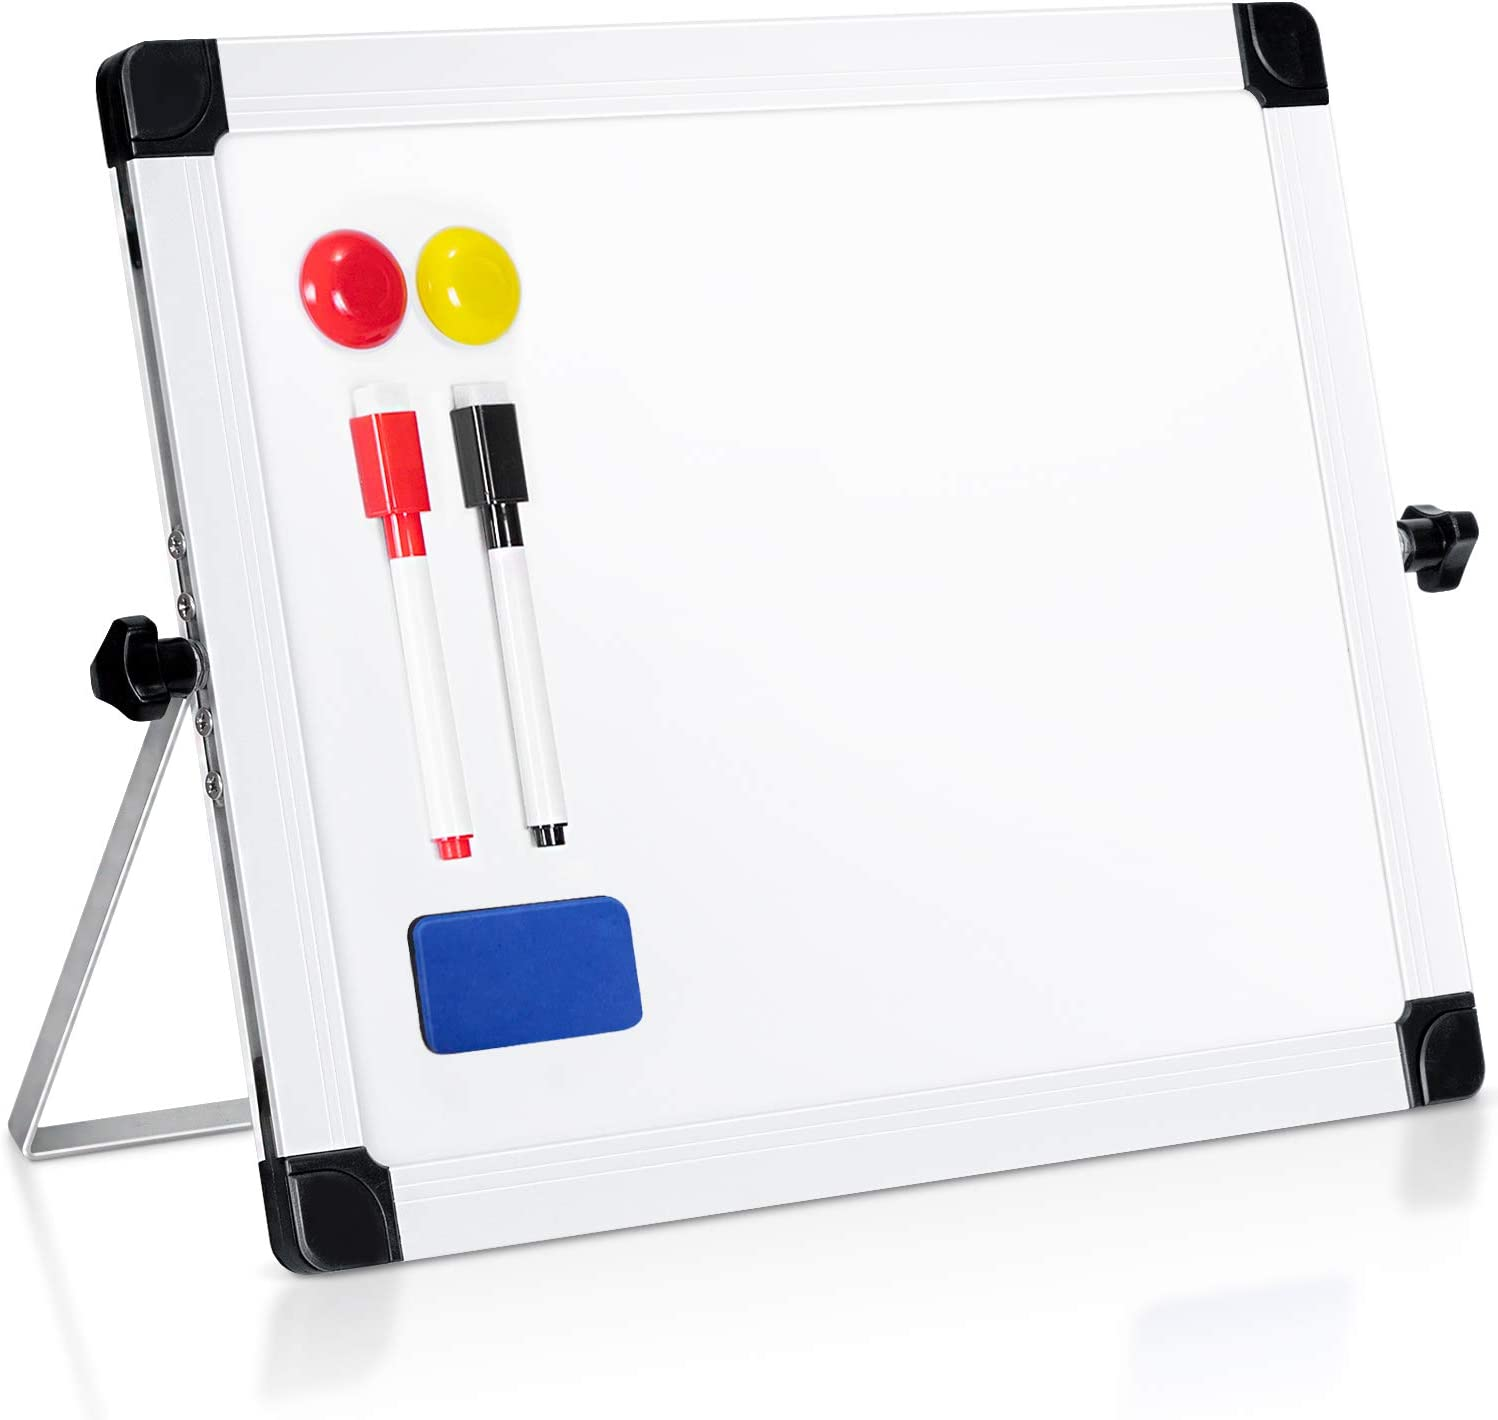 """ARCOBIS 14"""" x 11"""" Dry Erase White Board Easel,Portable Magnetic Double-Sided White Board with Stand for Classroom Home Office"""